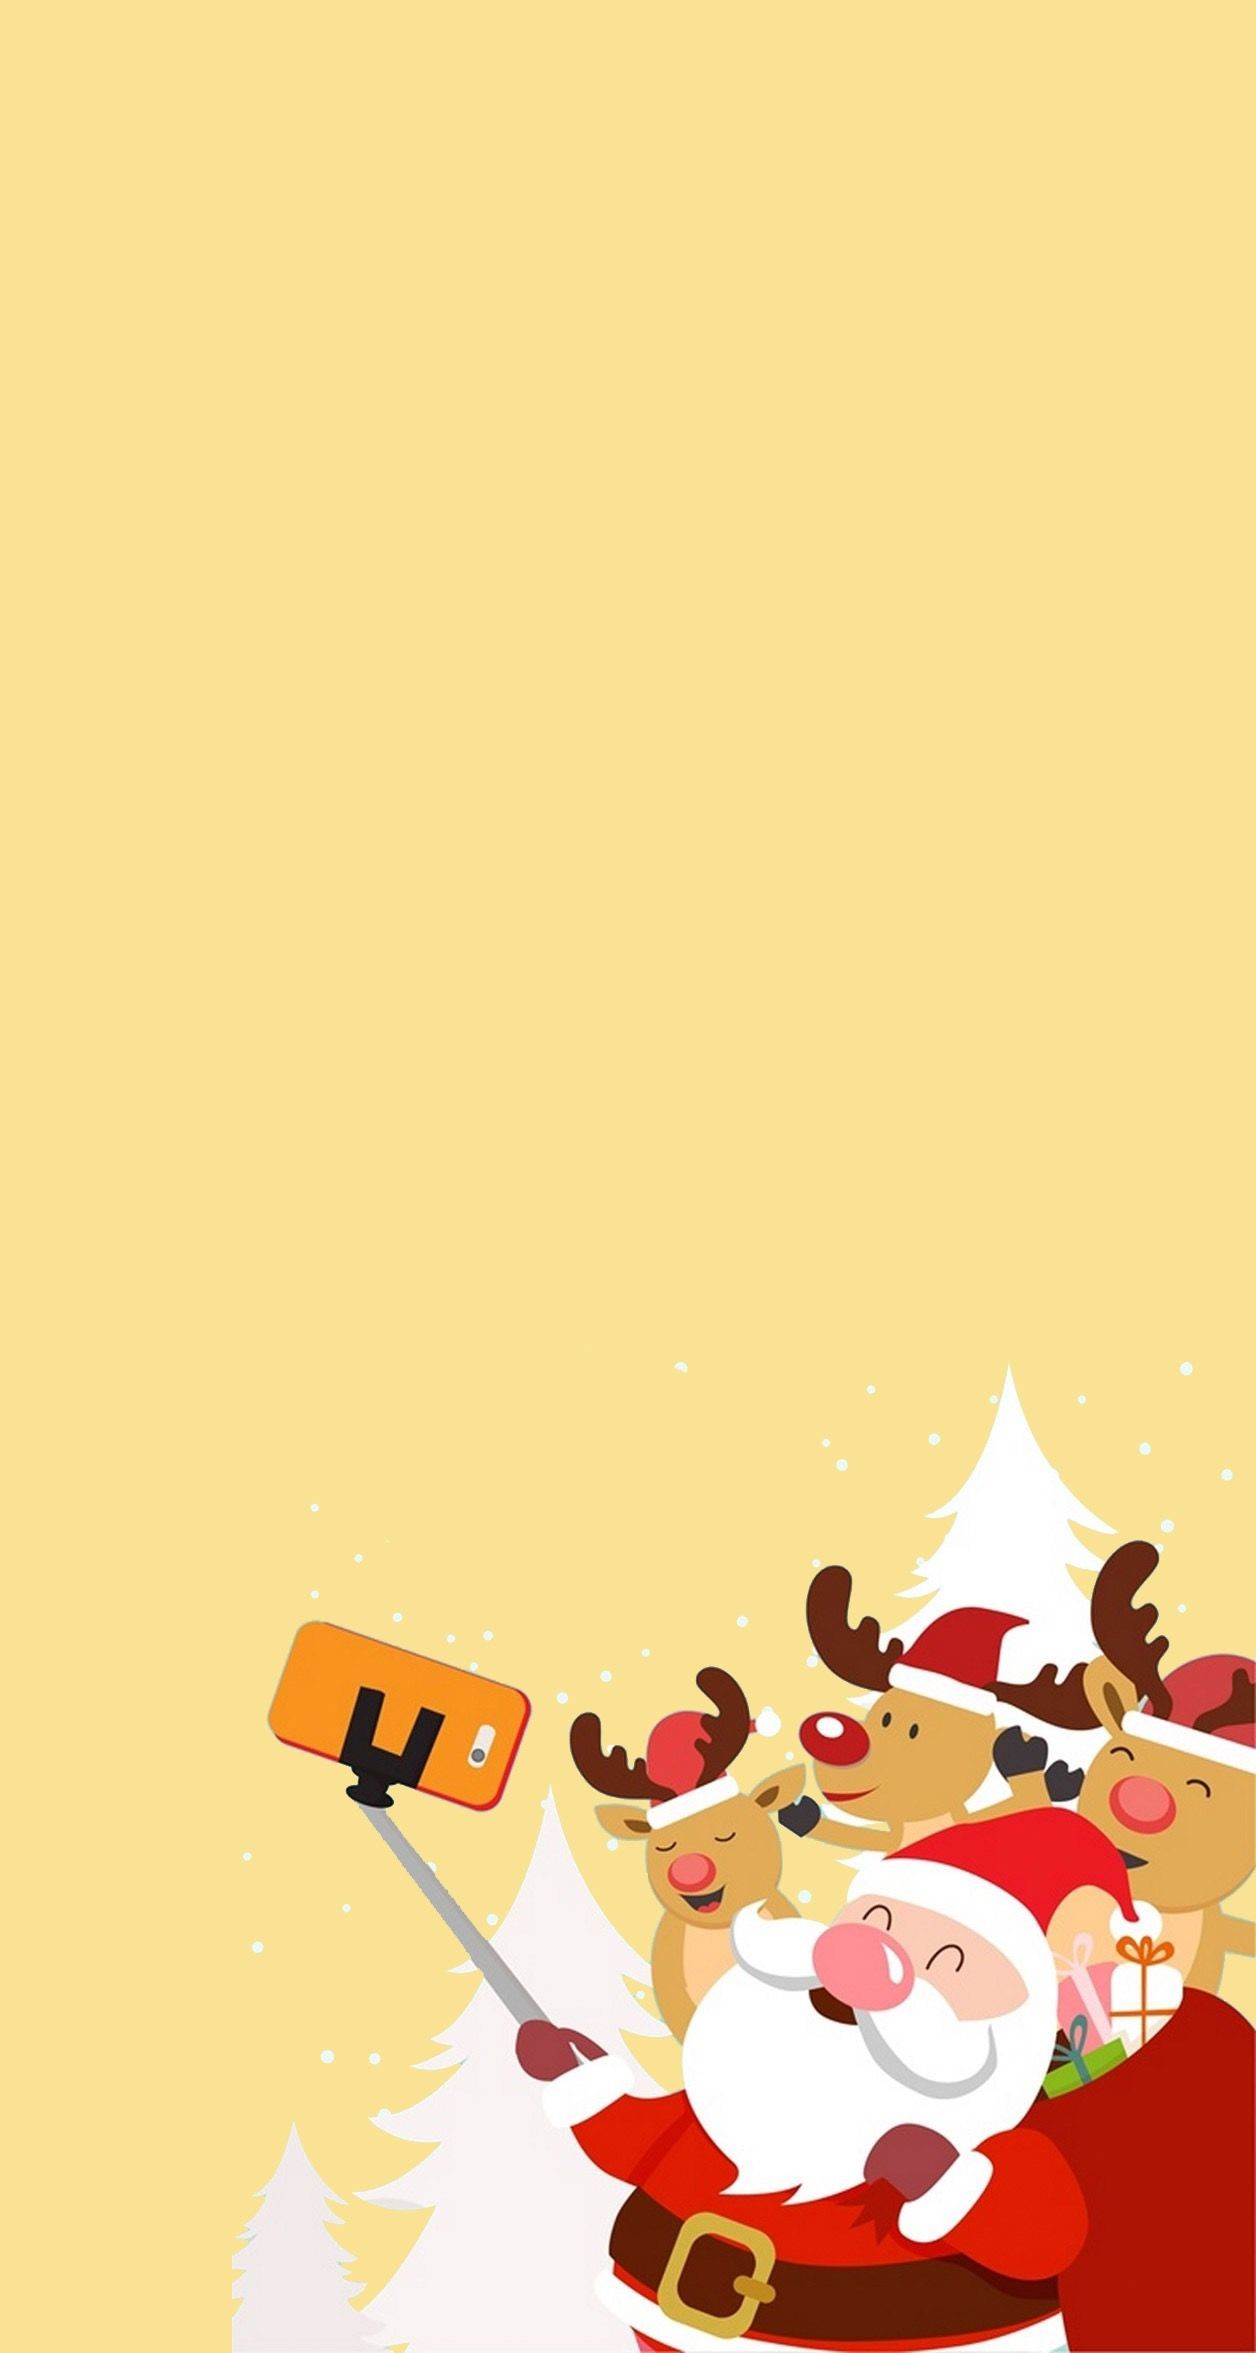 1256x2353 Don't let the past steal your present. Merry Christmas!!!- #Webgranth